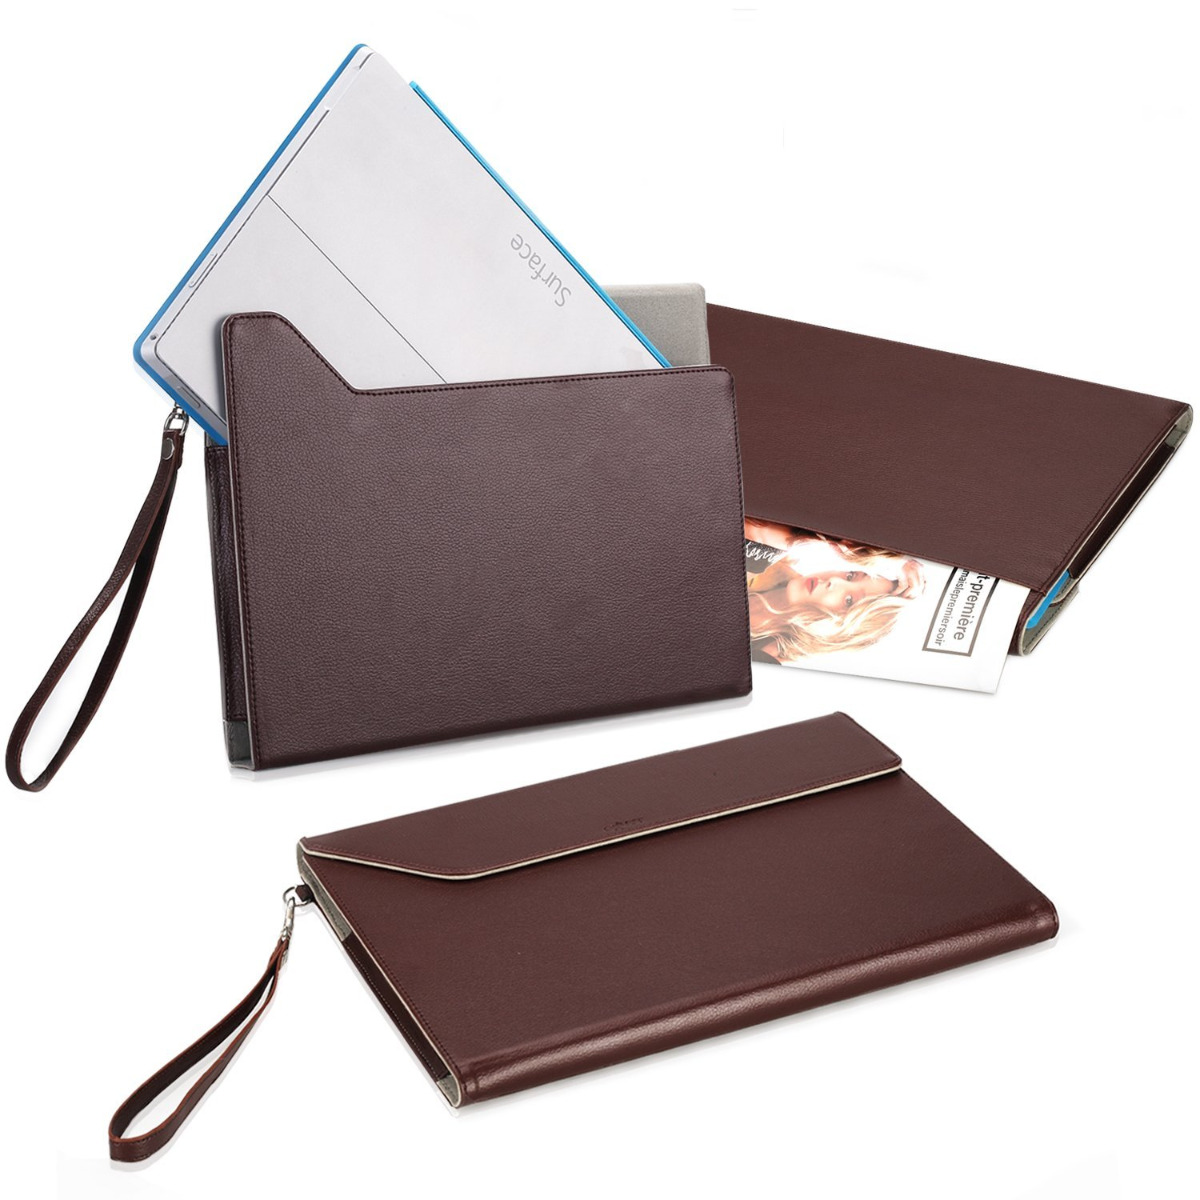 Pro 3 tablet sleeve case slim wallet pu leather protective skin pouch - Exact Express Pu Leather Envelope Sleeve Case For Microsoft Surface Pro 3 2014 Surface Pro 4 2015 Apple Ipad Pro 2015